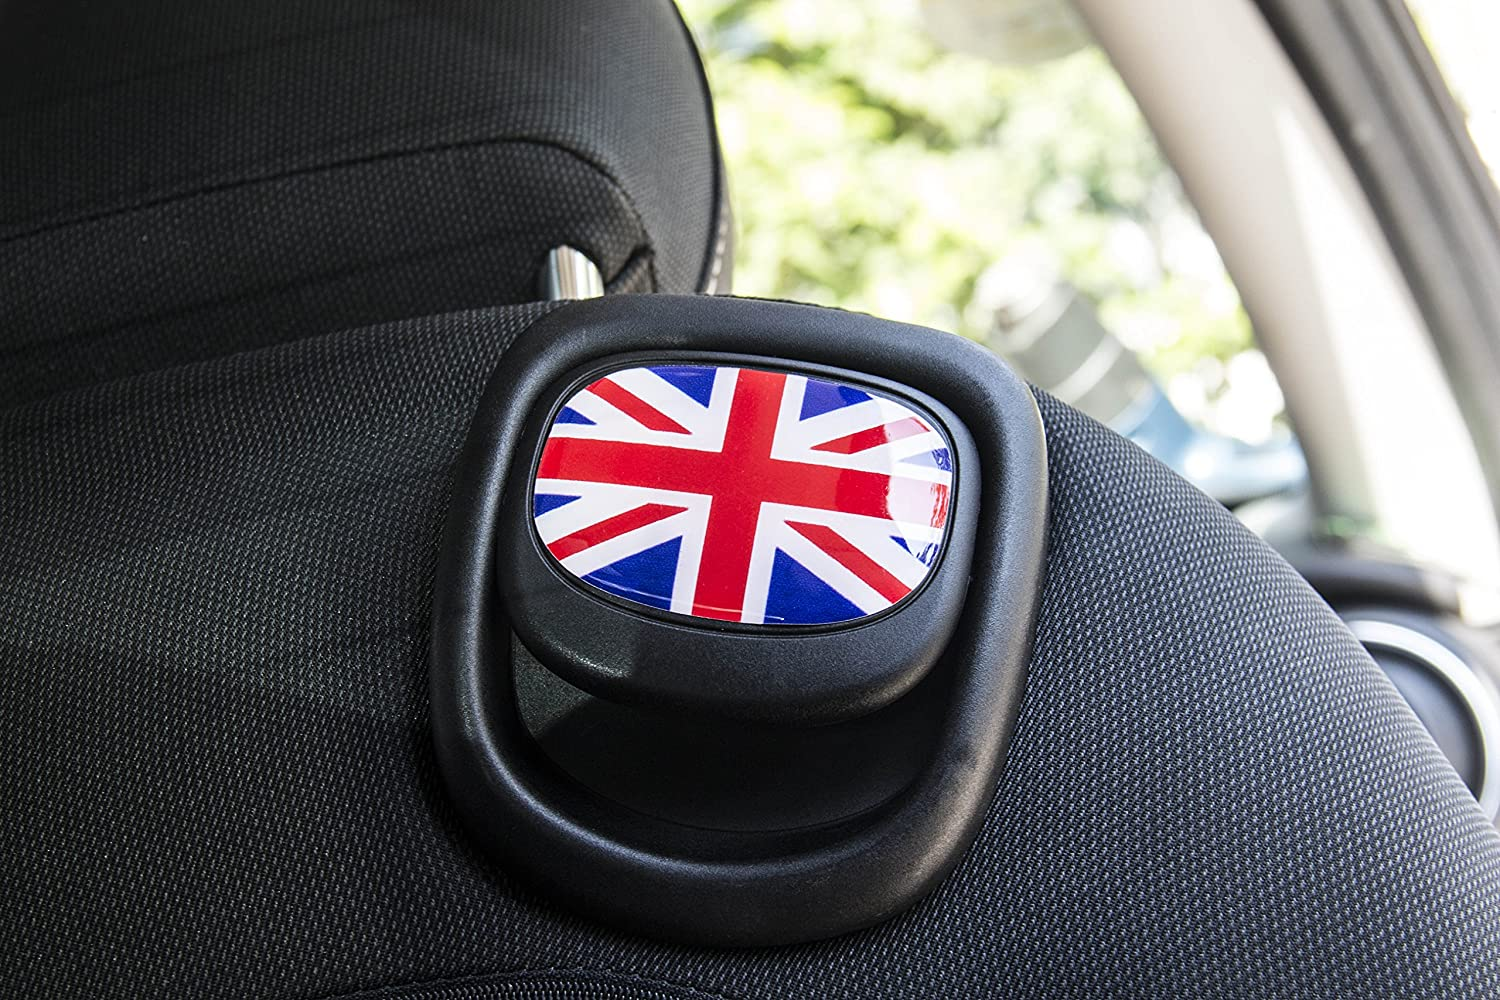 LVBAO Seat Handle Decal Cover Sticker Trim Caps for Mini Cooper ONE//S//JCW F55 Hardtop F56 Hatchback F57 Covertible 13